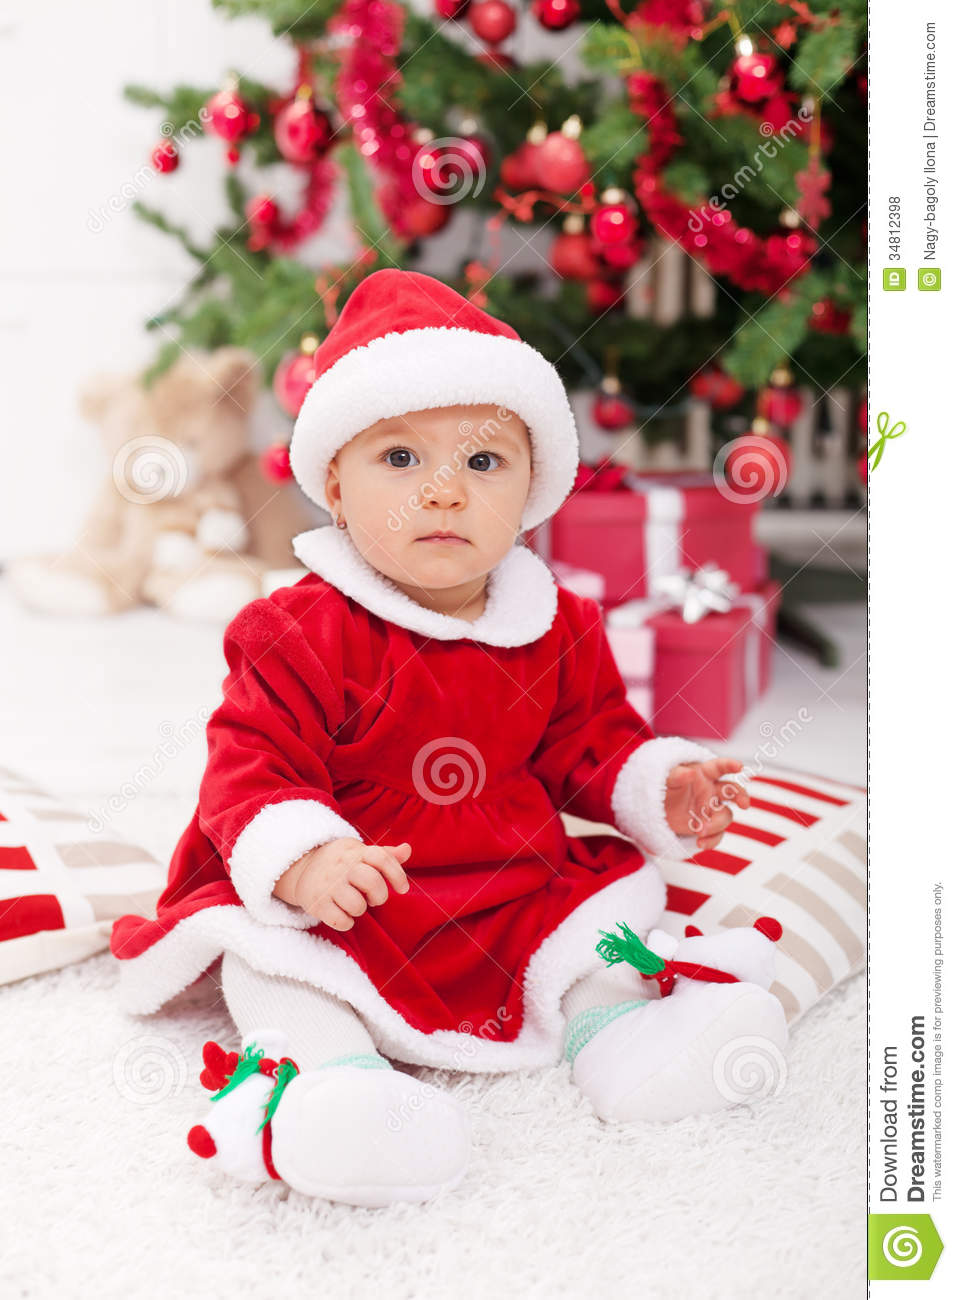 Pretty Baby Girl In Santa Costume Sitting Stock Photo - Image of ...